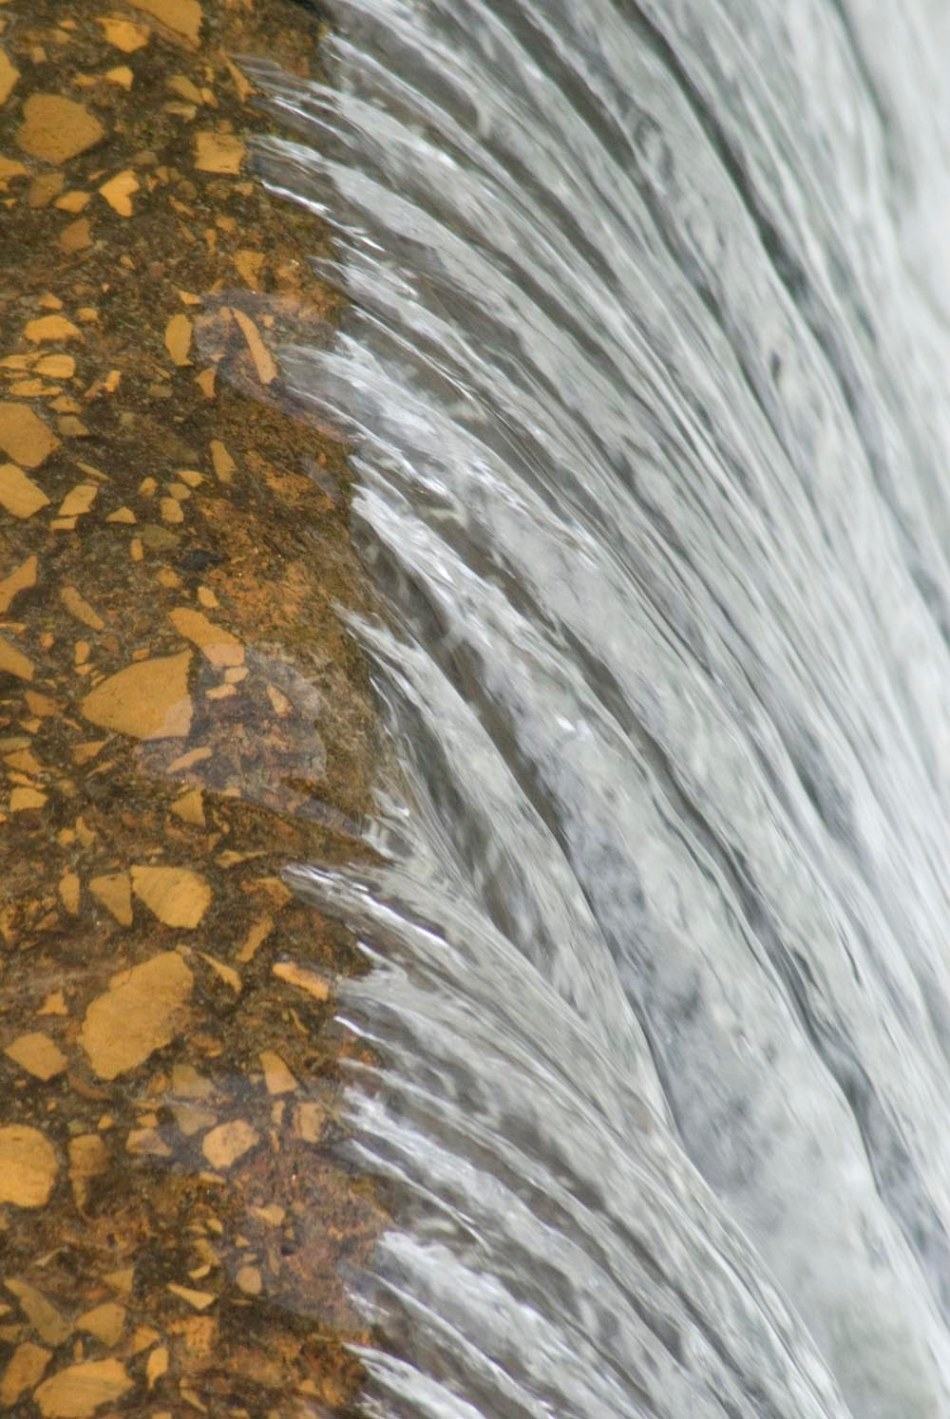 water flowing over dam